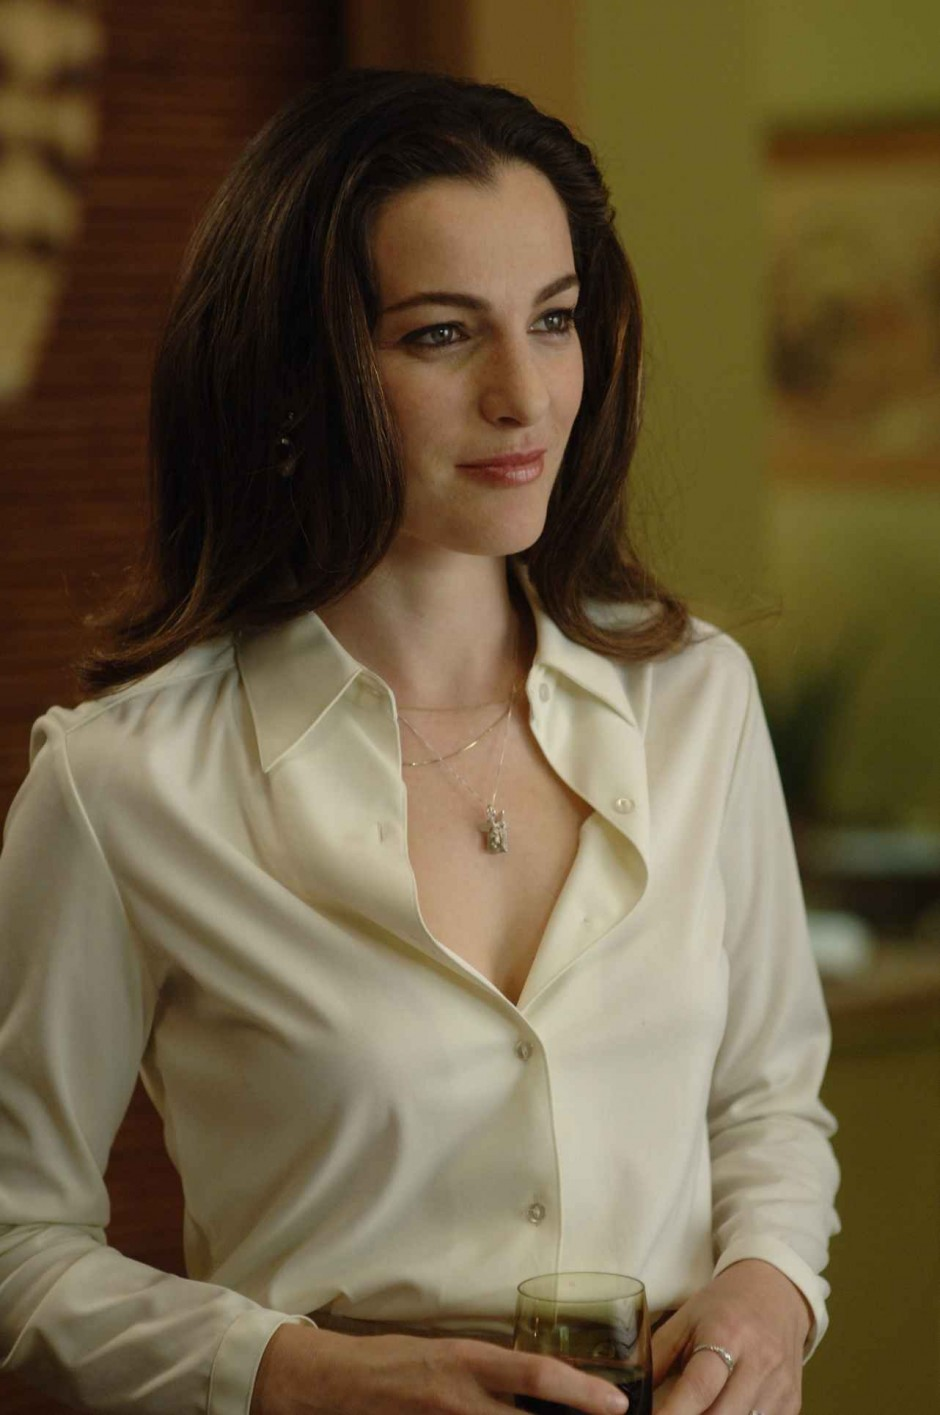 Ayelet Zurer Ayelet Zurer Biography Ayelet Zurer39s Famous Quotes